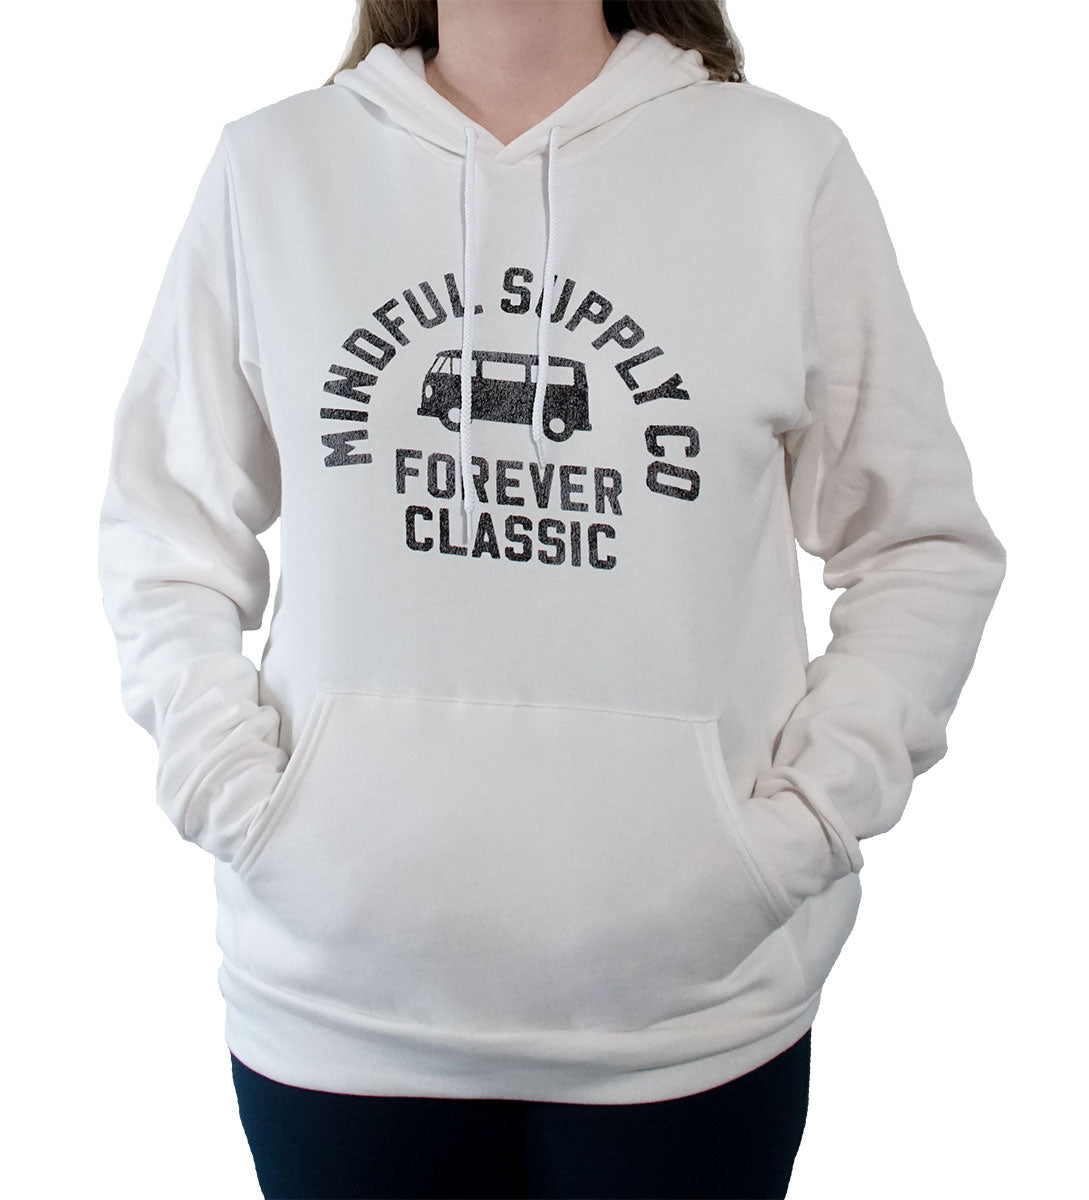 Forever Classic Unisex Hoodie